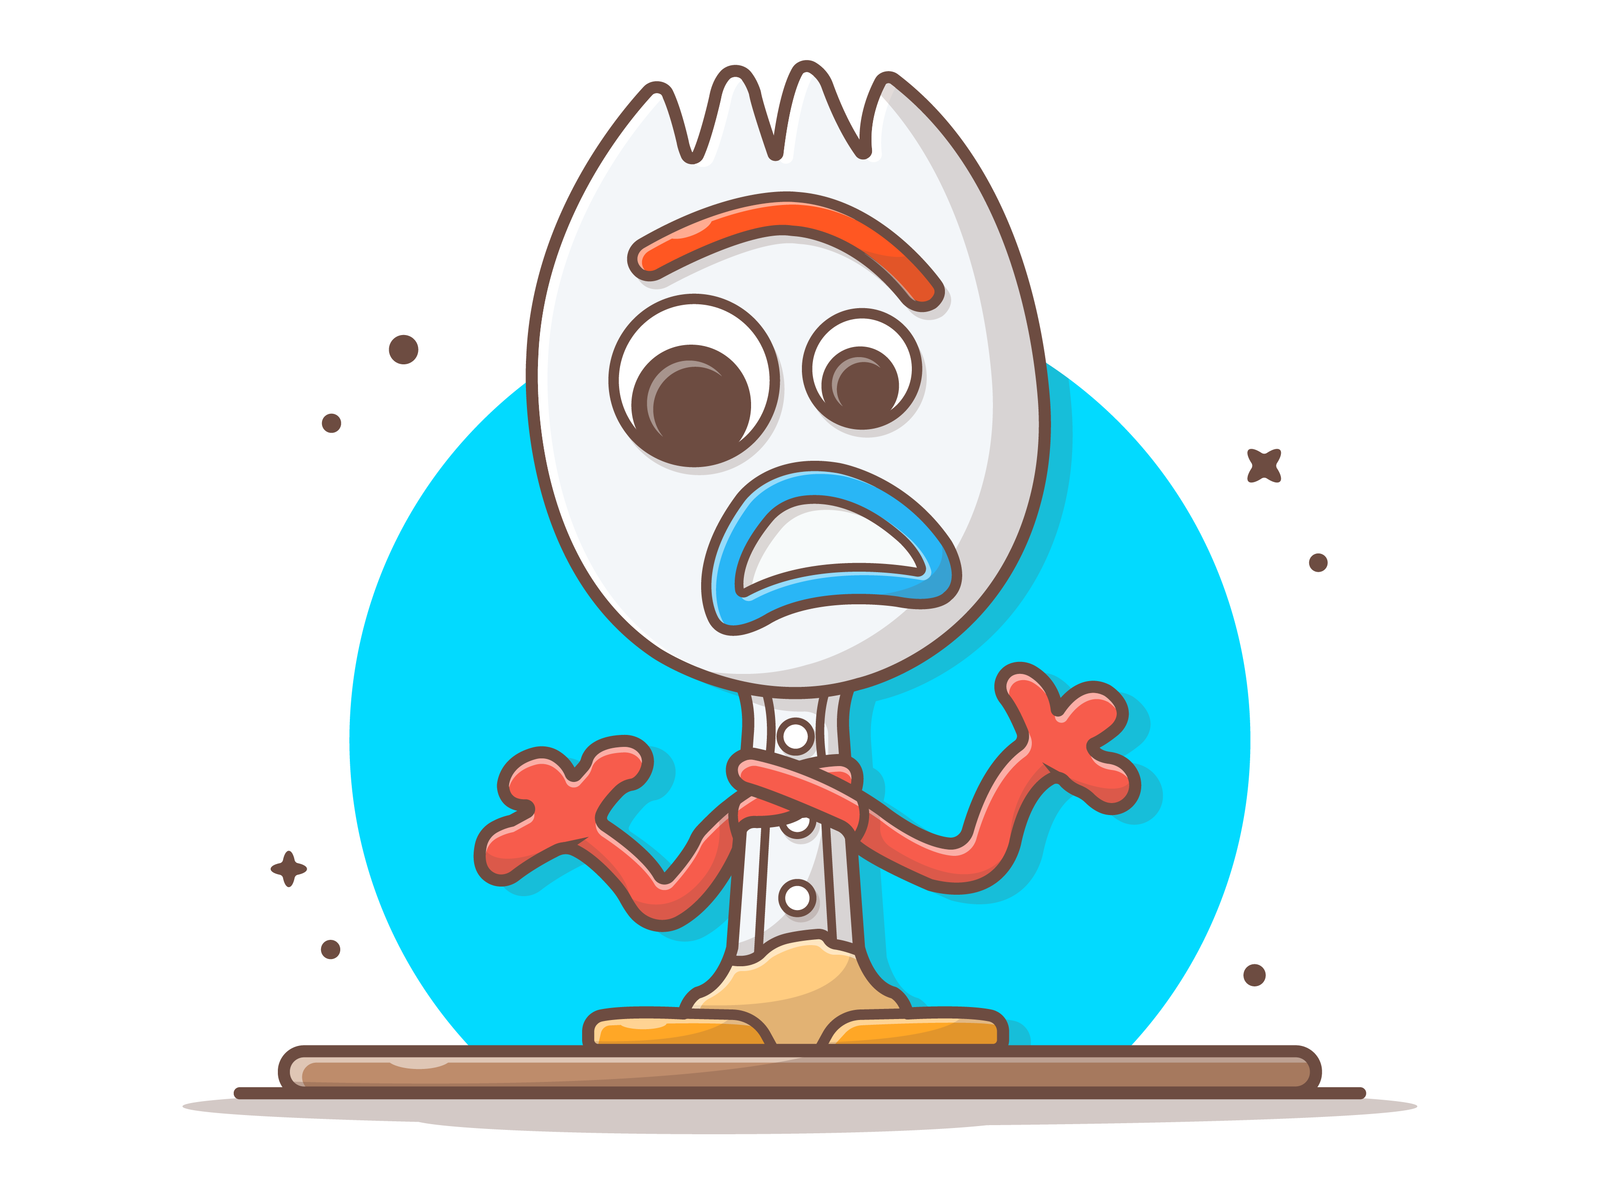 Forky from Toy Story 4 😁🍴 by catalyst on Dribbble